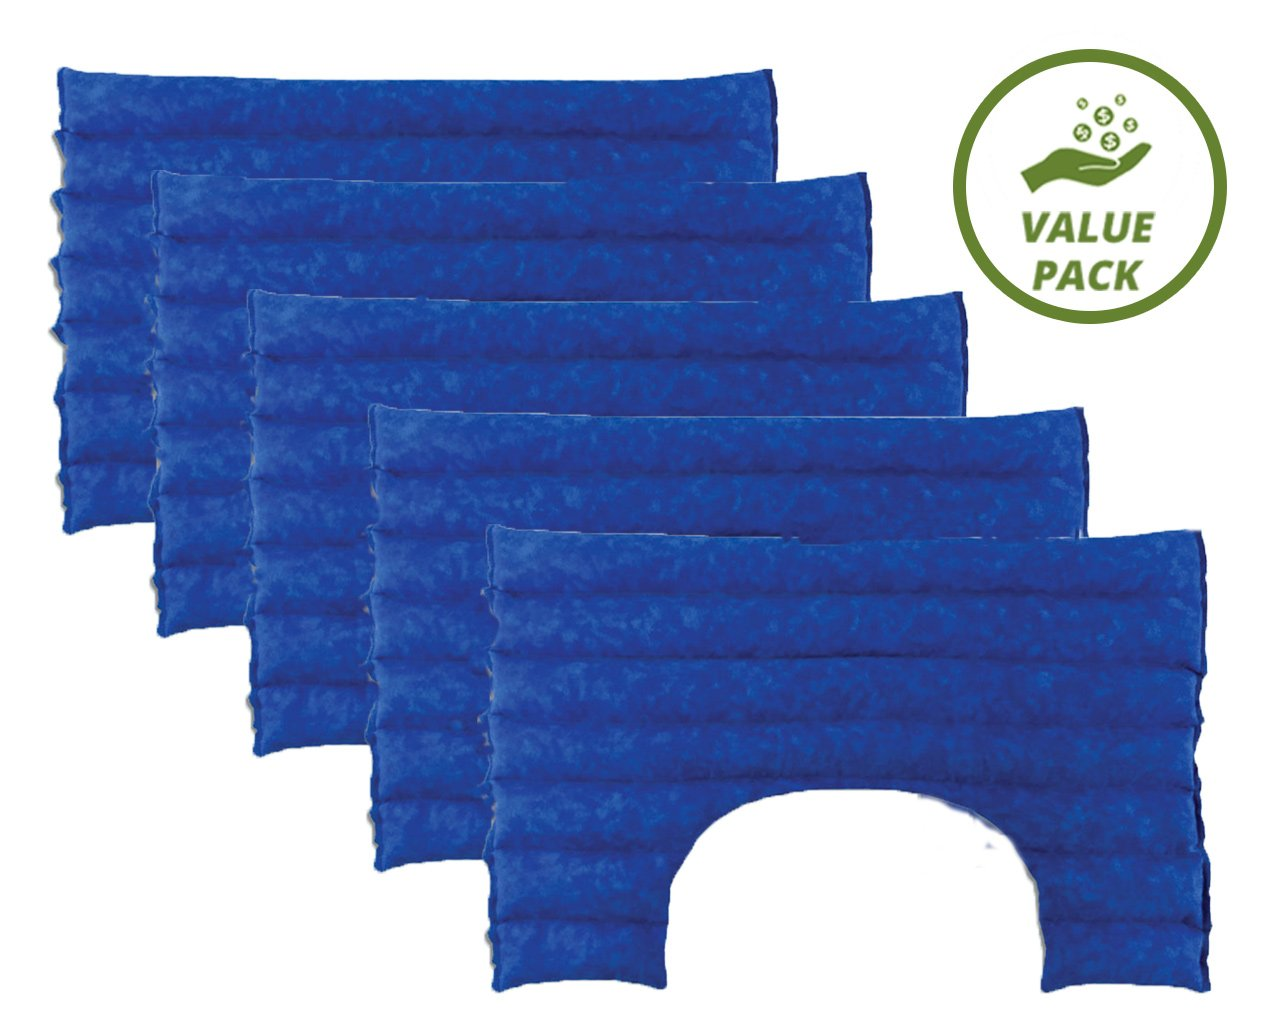 Nature Creation- Neck & Shoulder Herbal Heating Pad SET OF 5 FOR EVERYONE! Natural Hot & Cold Therapy Packs - VALUE PACK (Blue Marble) by Nature Creation